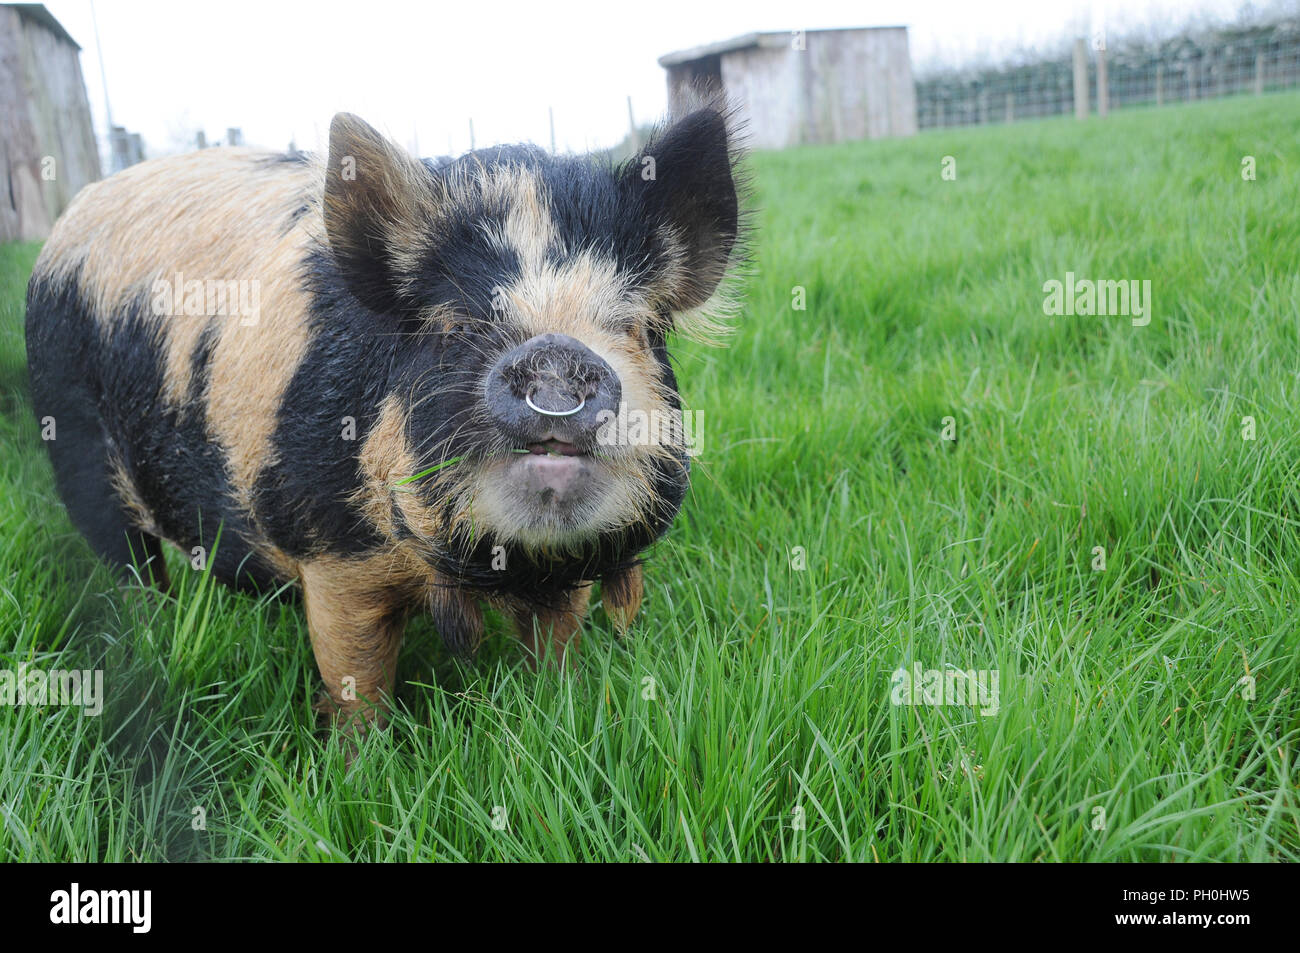 A Kune Kune pig with a ring in it's nose stood grazing in a field - Stock Image